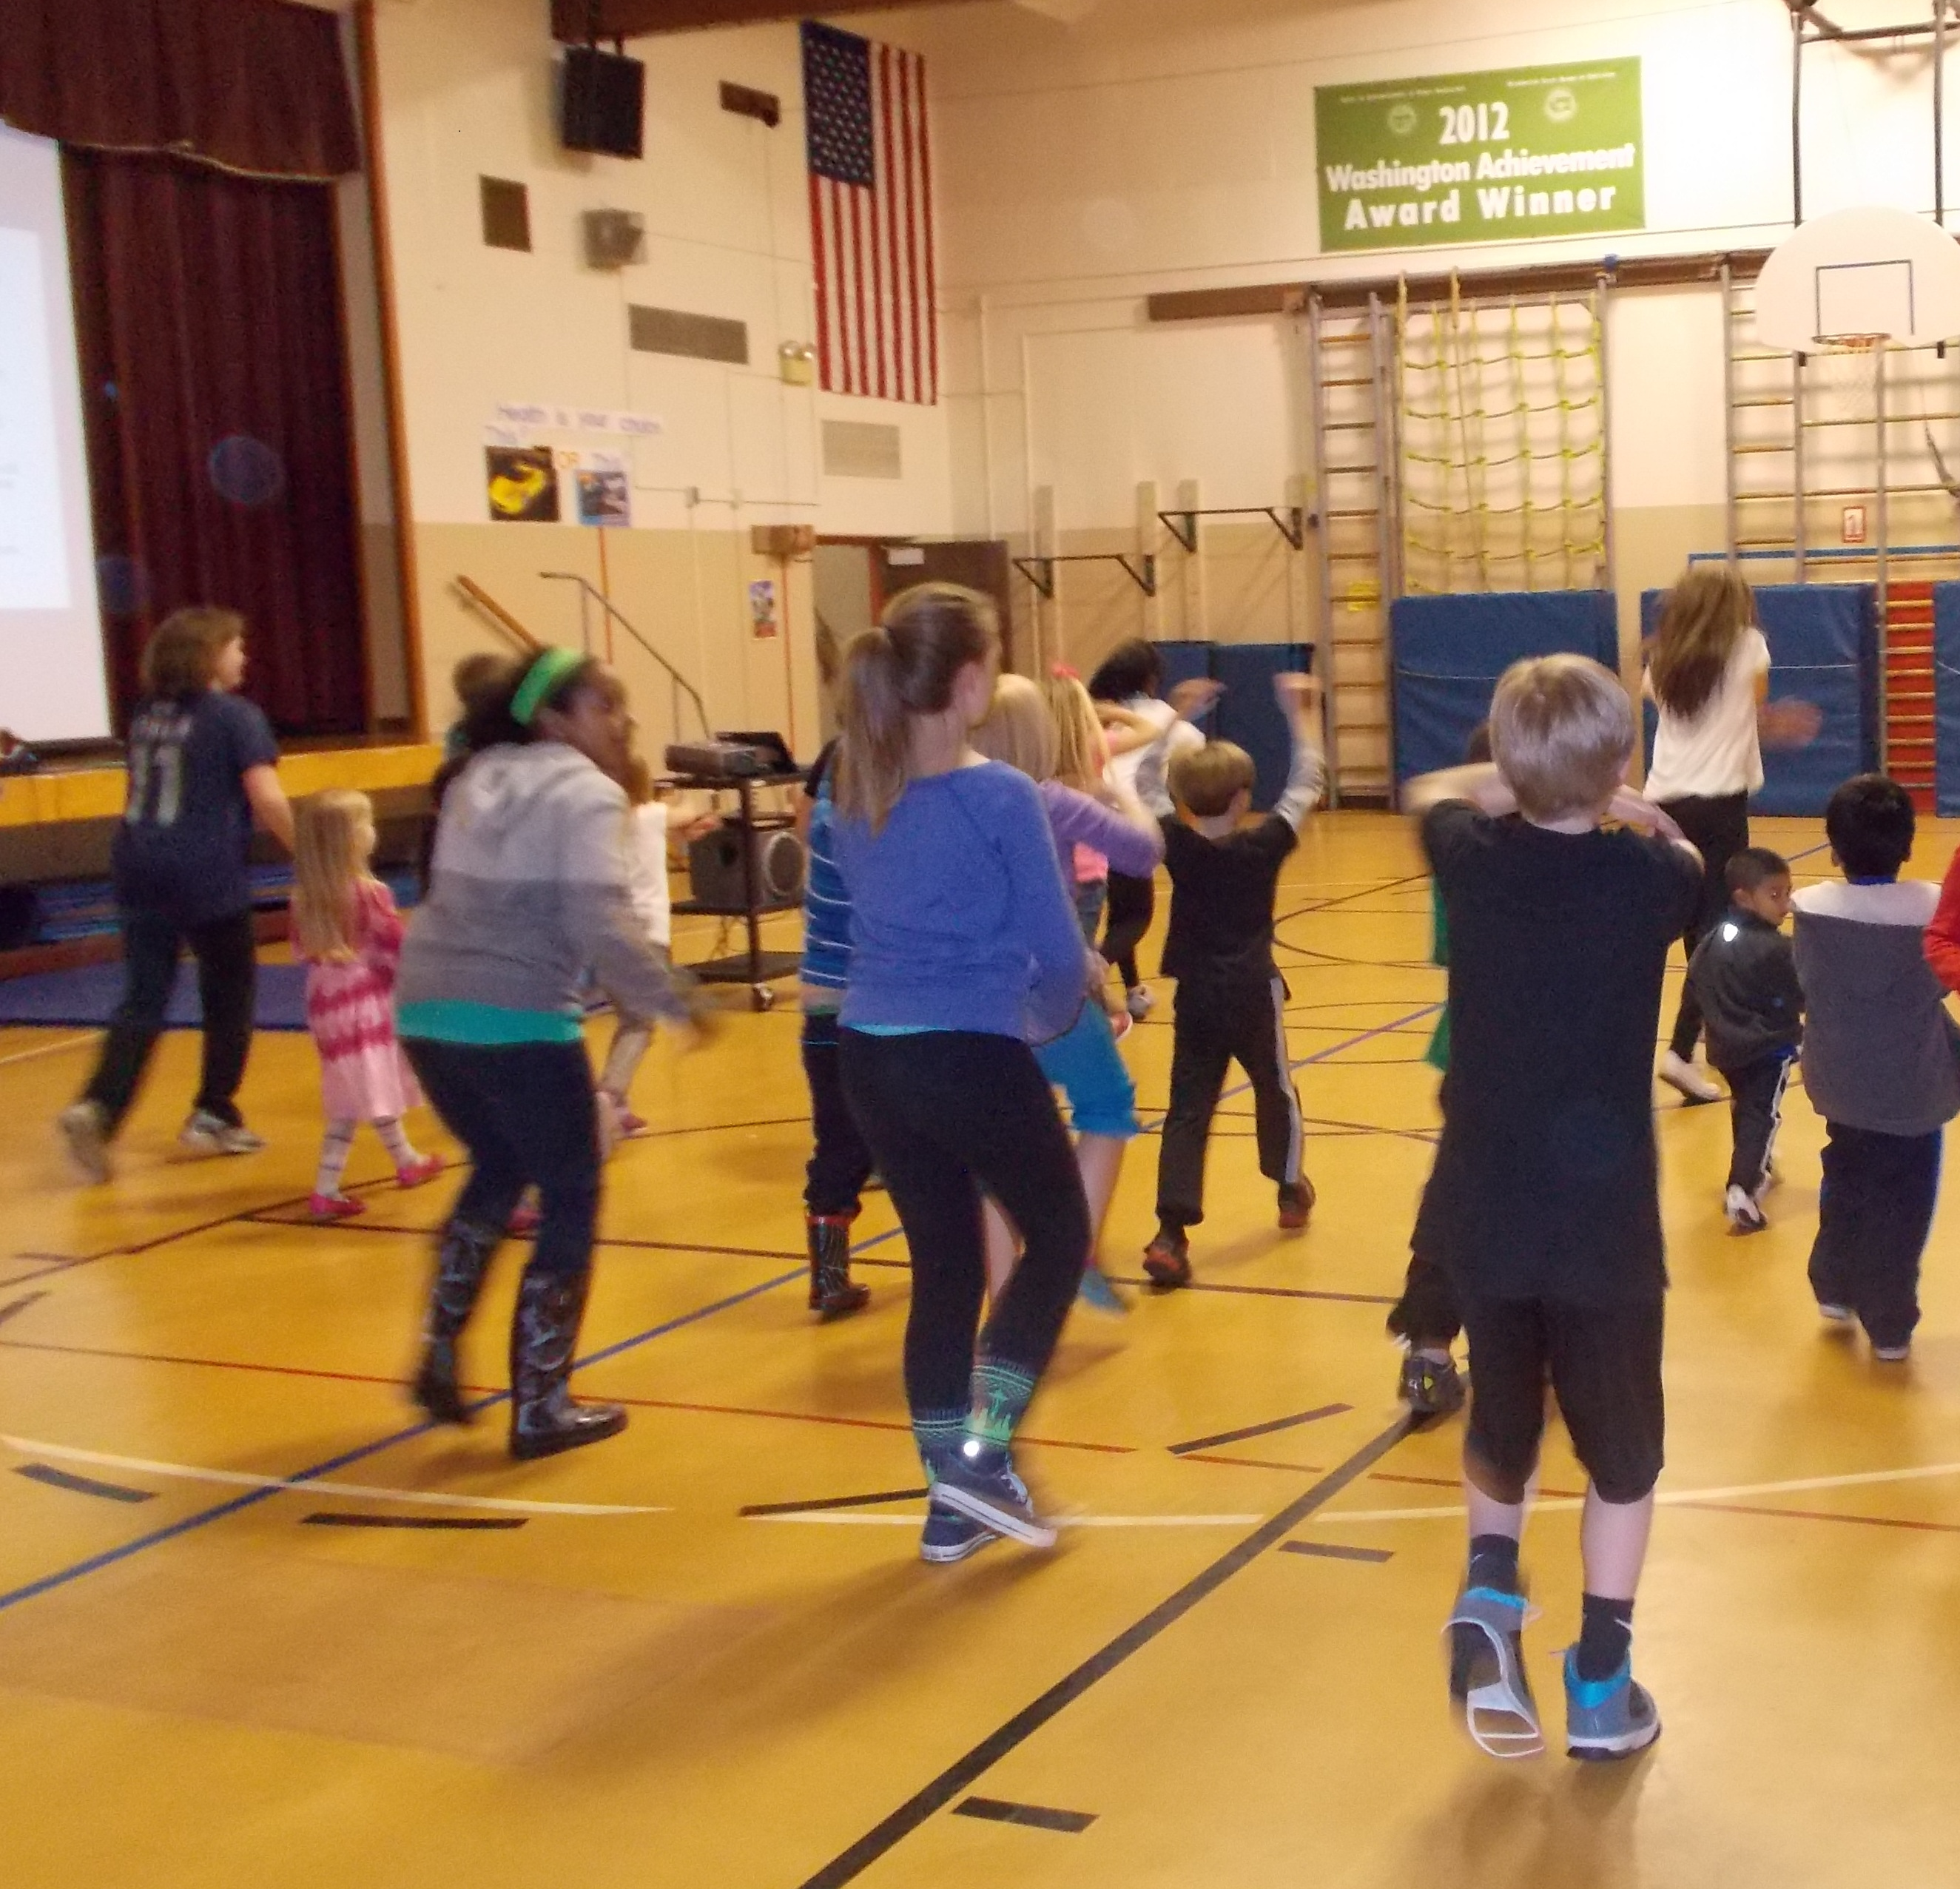 Families at Covington Elementary School enjoy an active family night event.